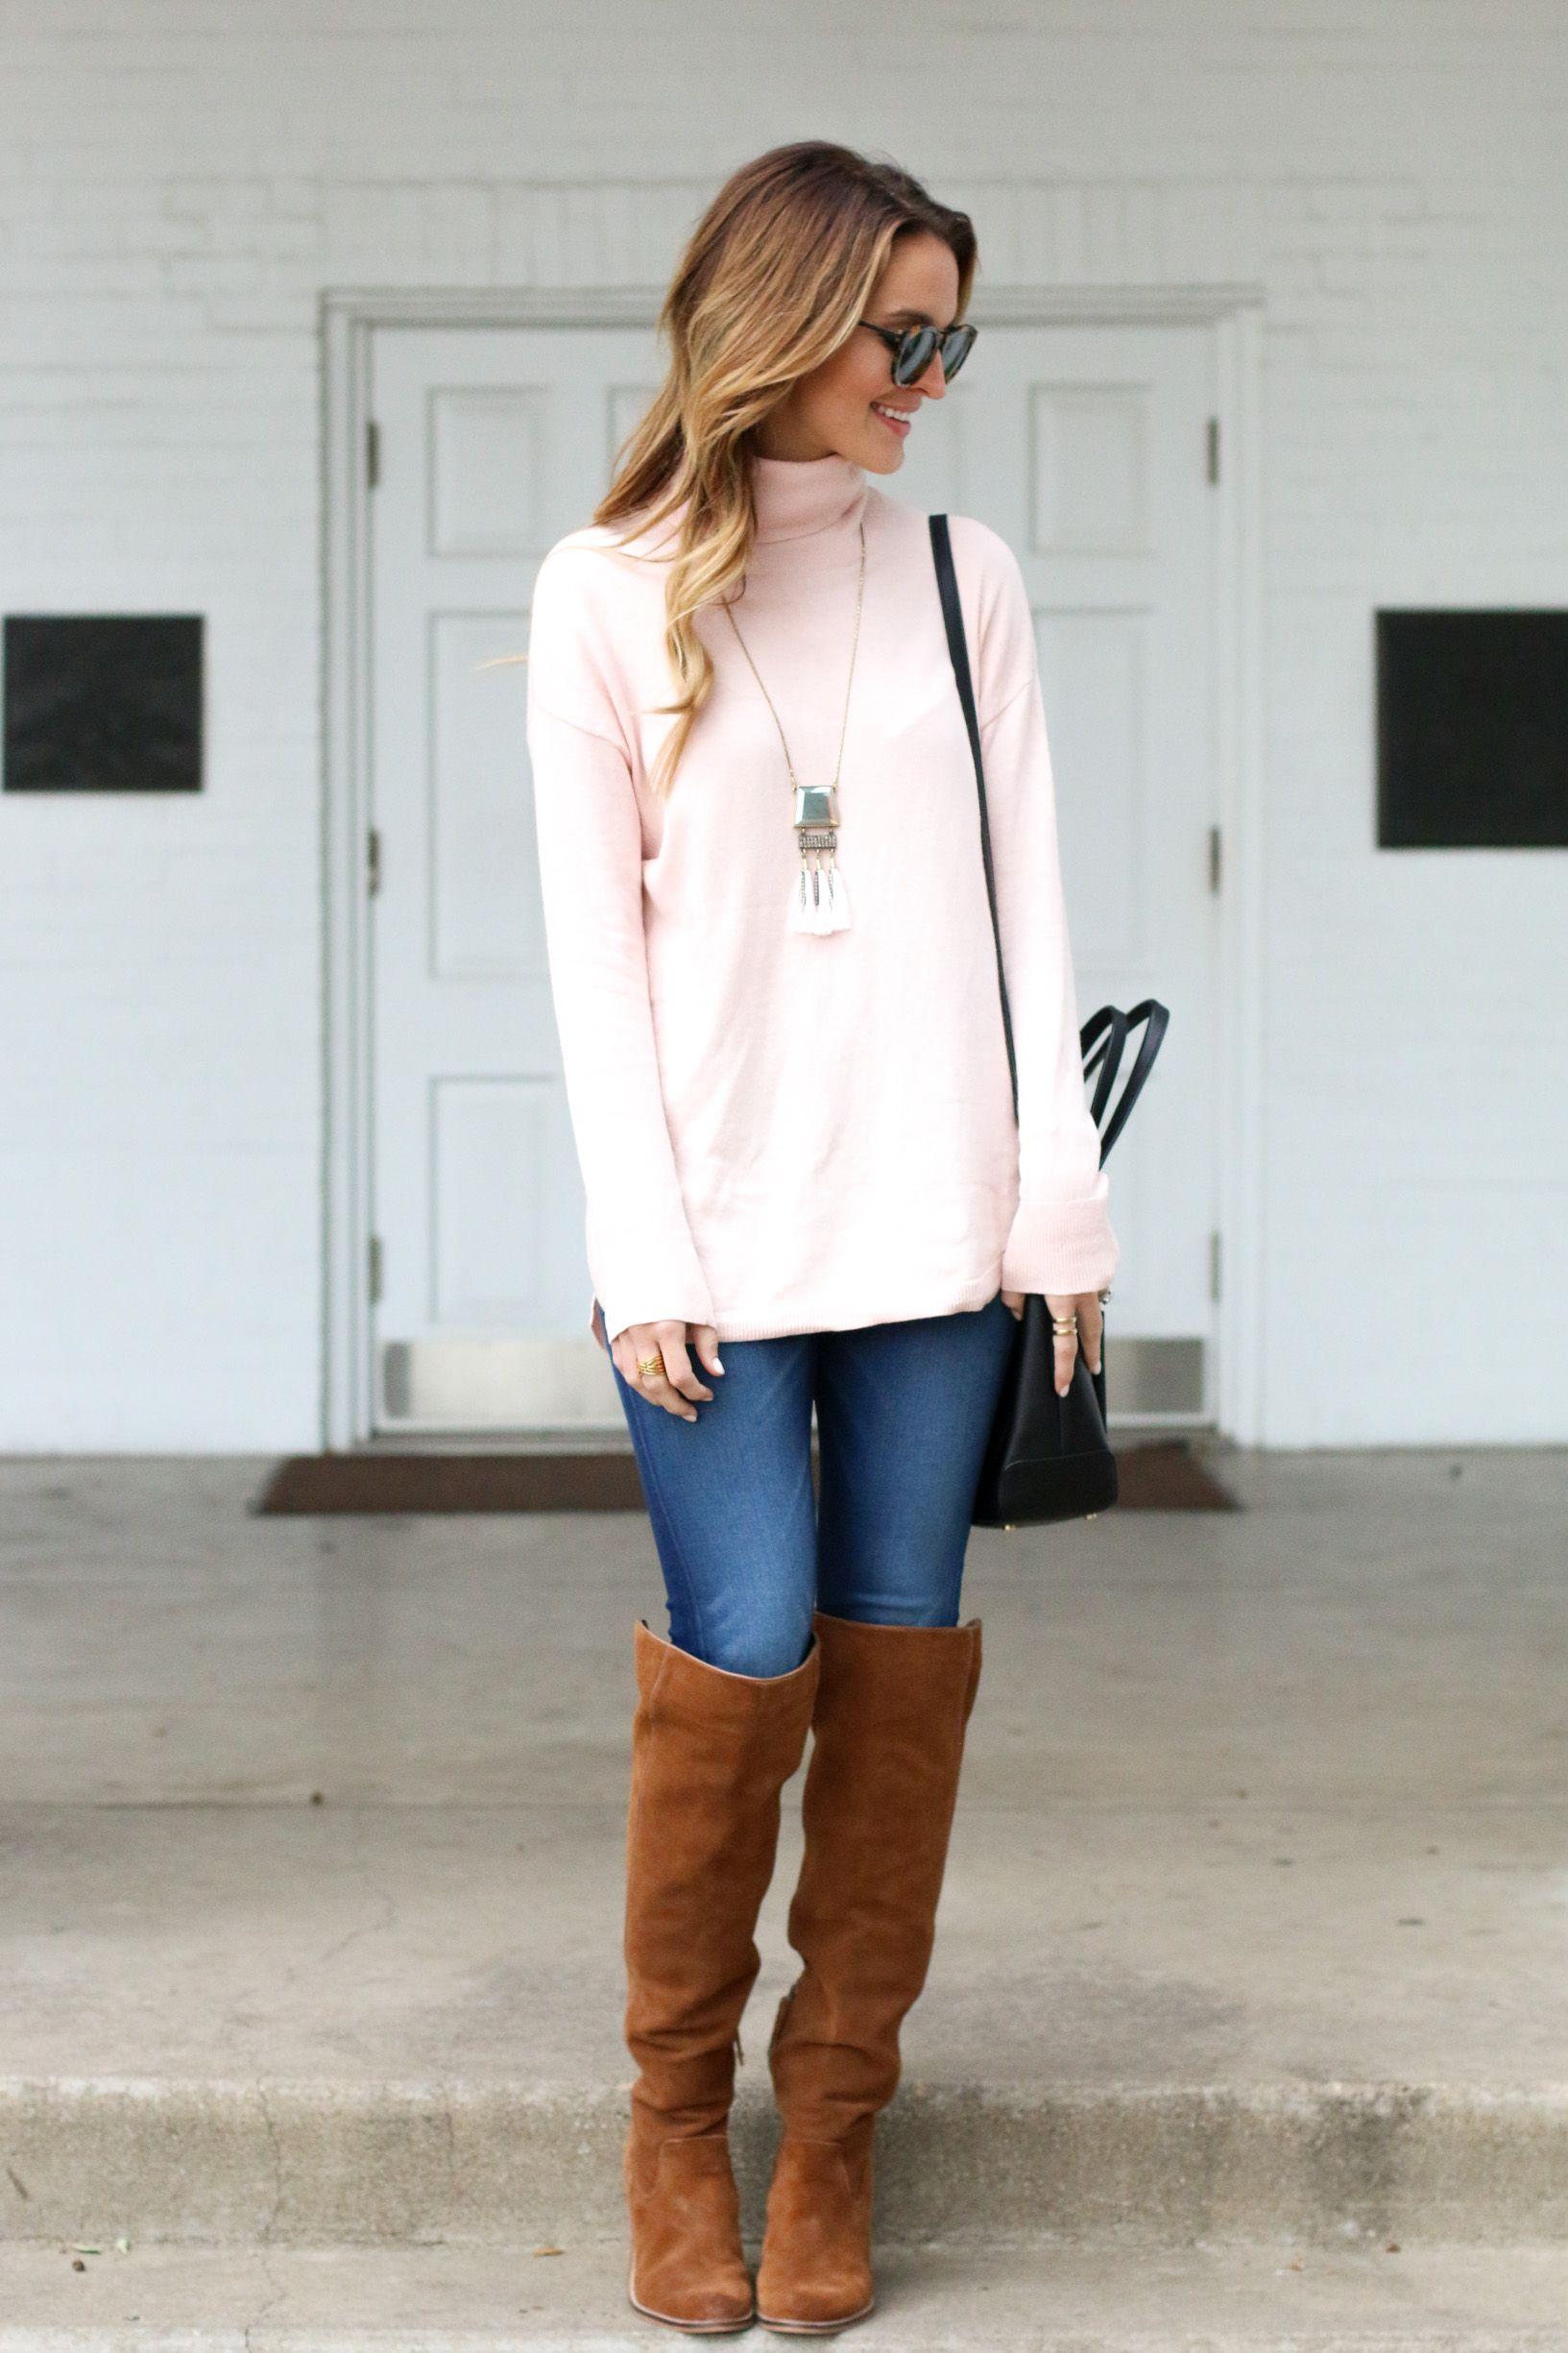 ac862d06ea3 pale pink sweater + over-the-knee boots